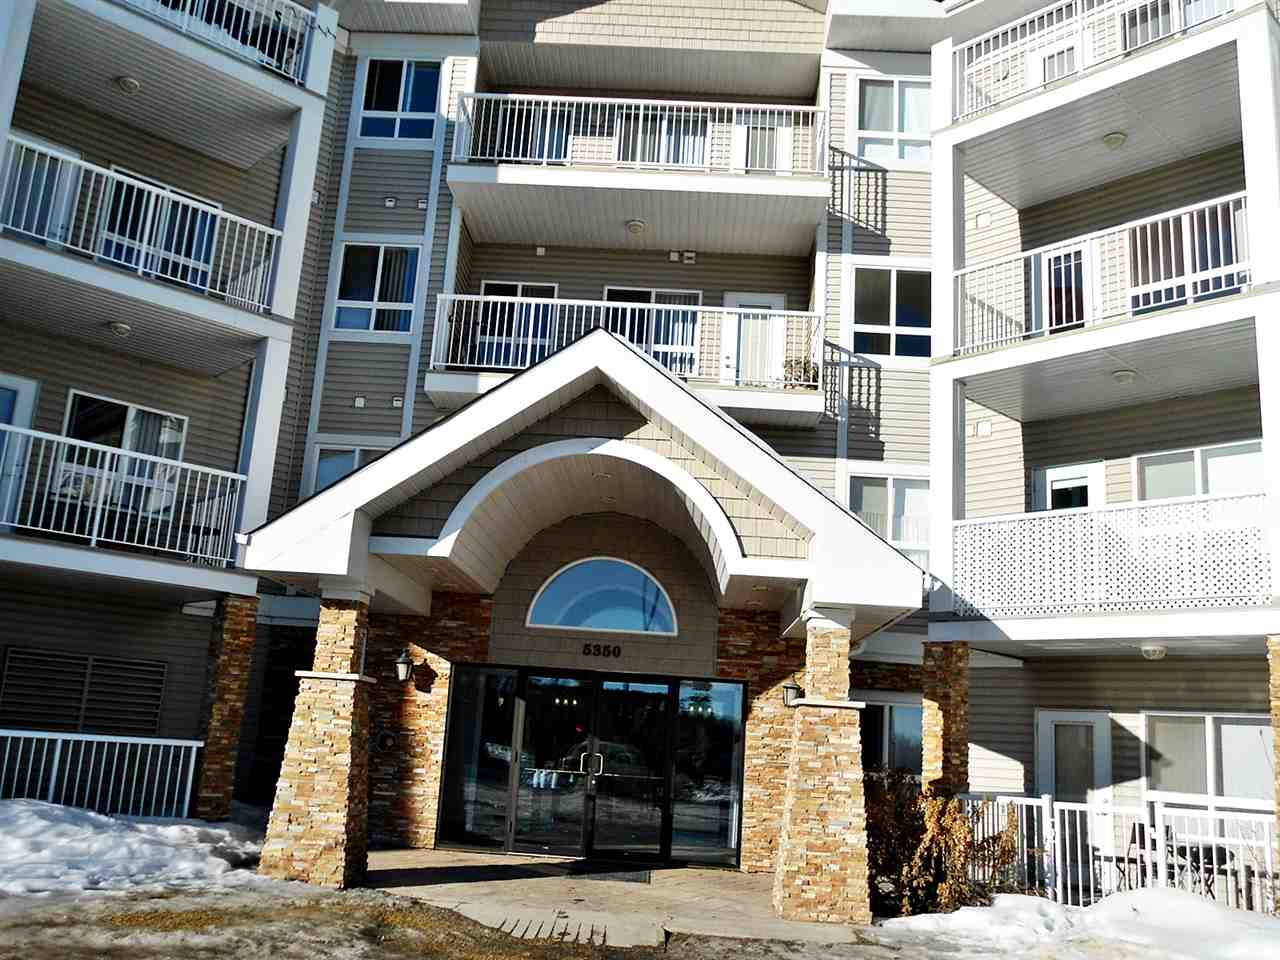 Main Photo: 415 5350 199 Street in Edmonton: Zone 58 Condo for sale : MLS® # E4087728